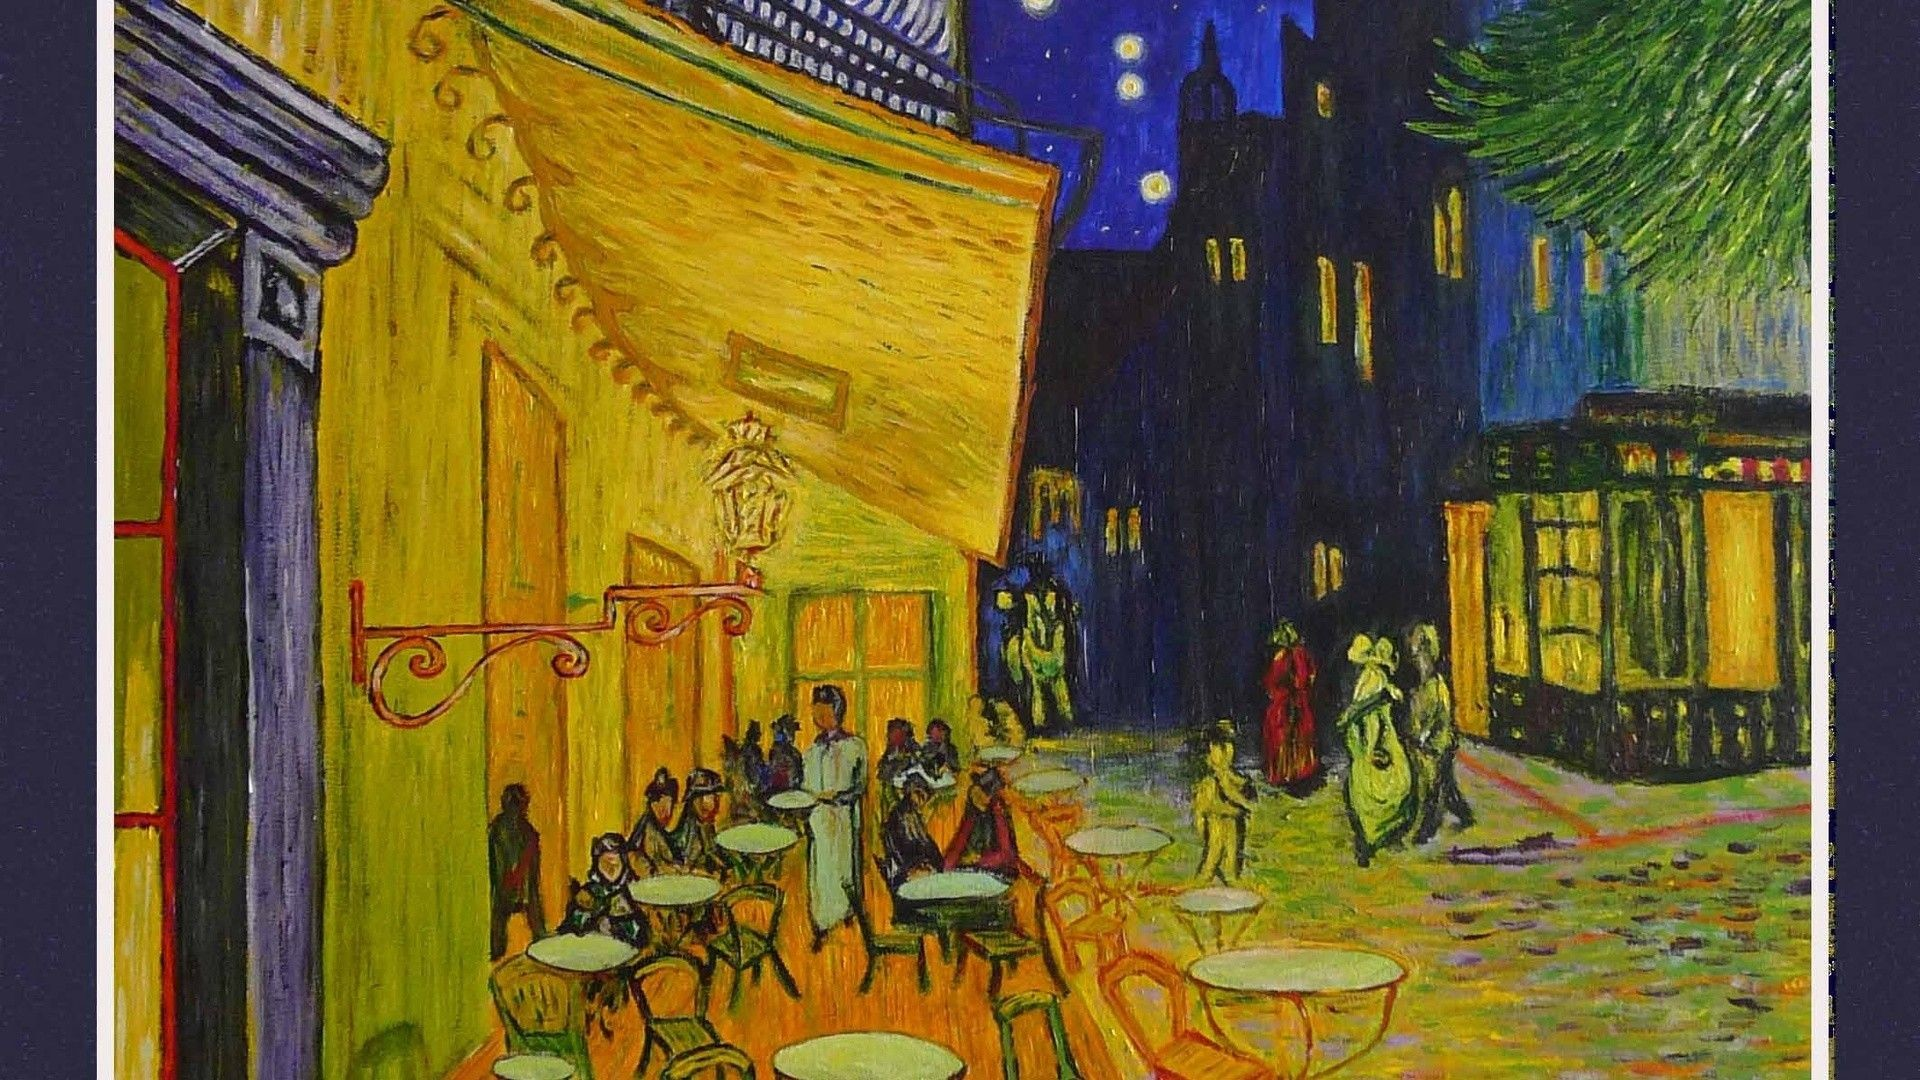 1920x1080 Wallpapers 60 1920x1080 Van Gogh Cafe Terrace At Night Cafe Night Van. Van Gogh Wallpapers 61 Background Pictures